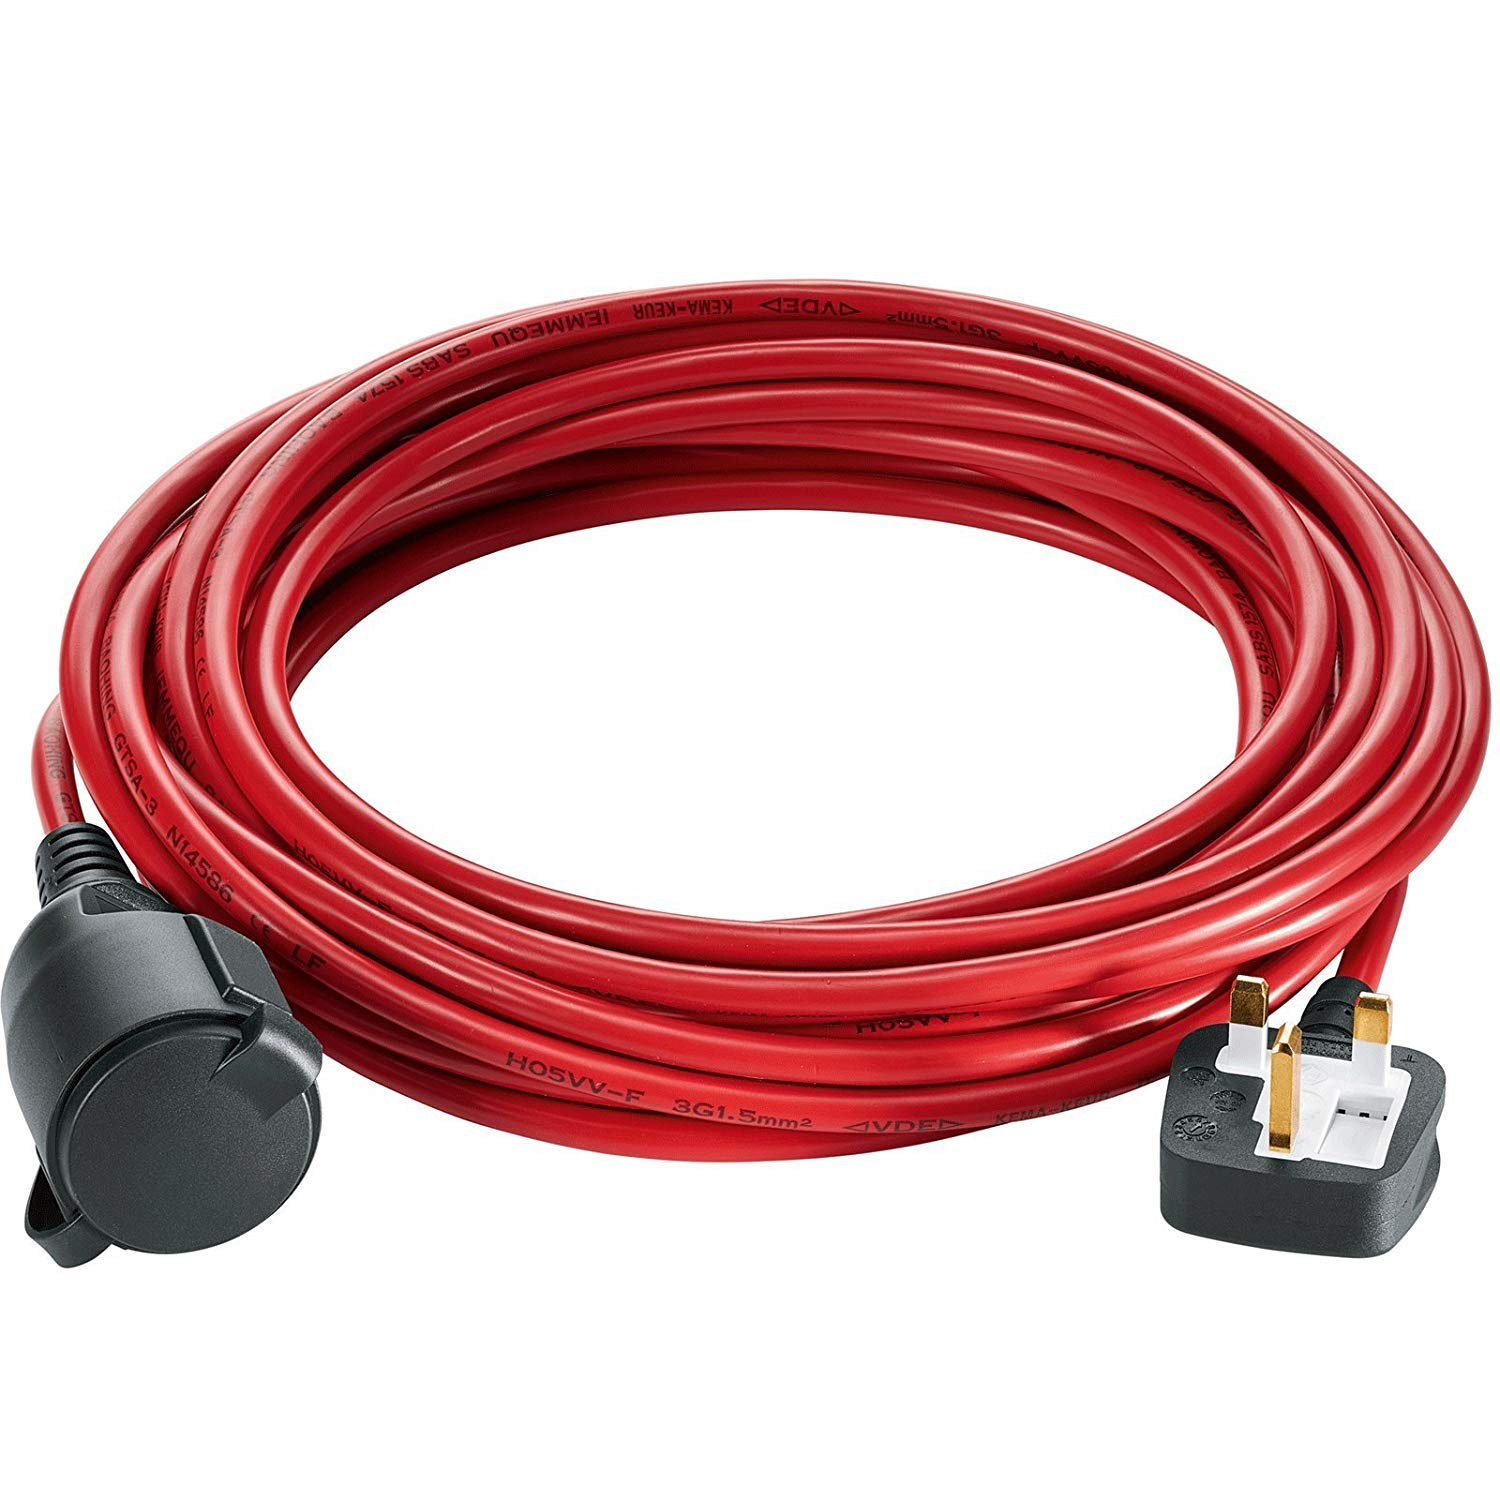 Power Cable Plug for QUALCAST Lawnmower Strimmer Trimmer 10m or 20m